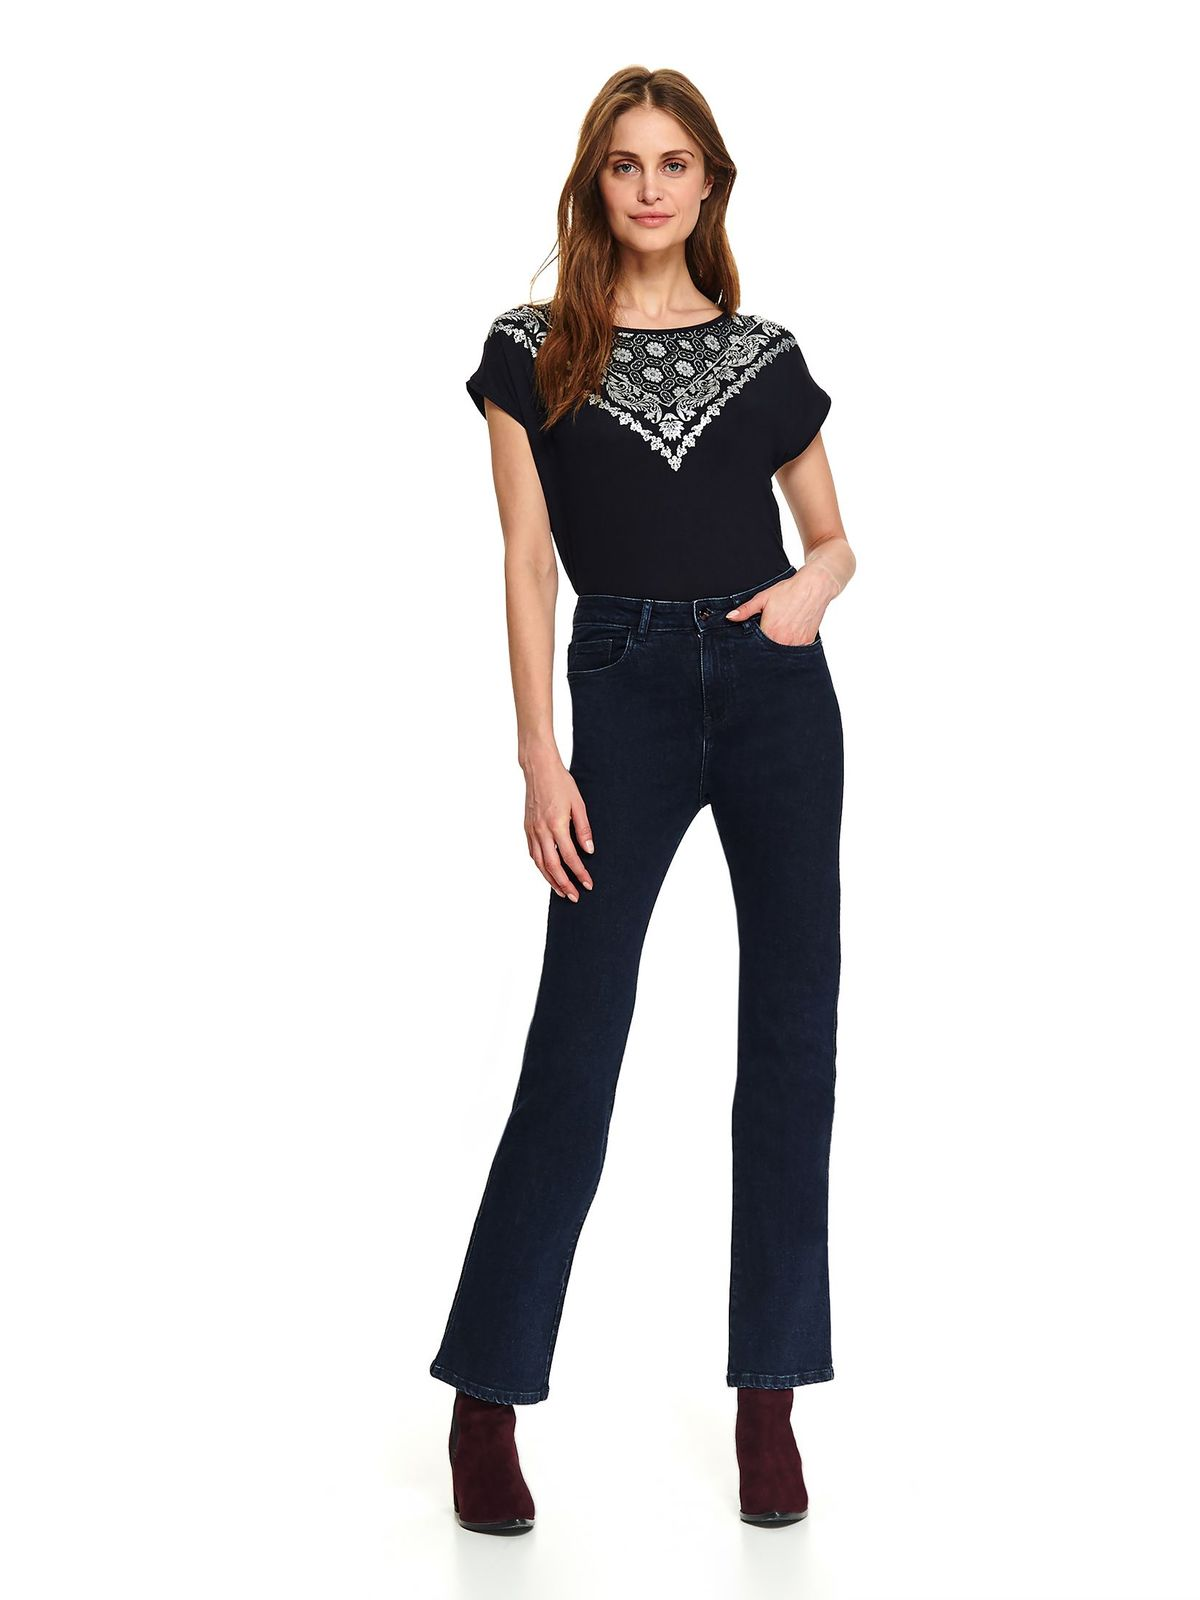 Darkblue women`s blouse casual short cut flared with graphic details neckline short sleeves